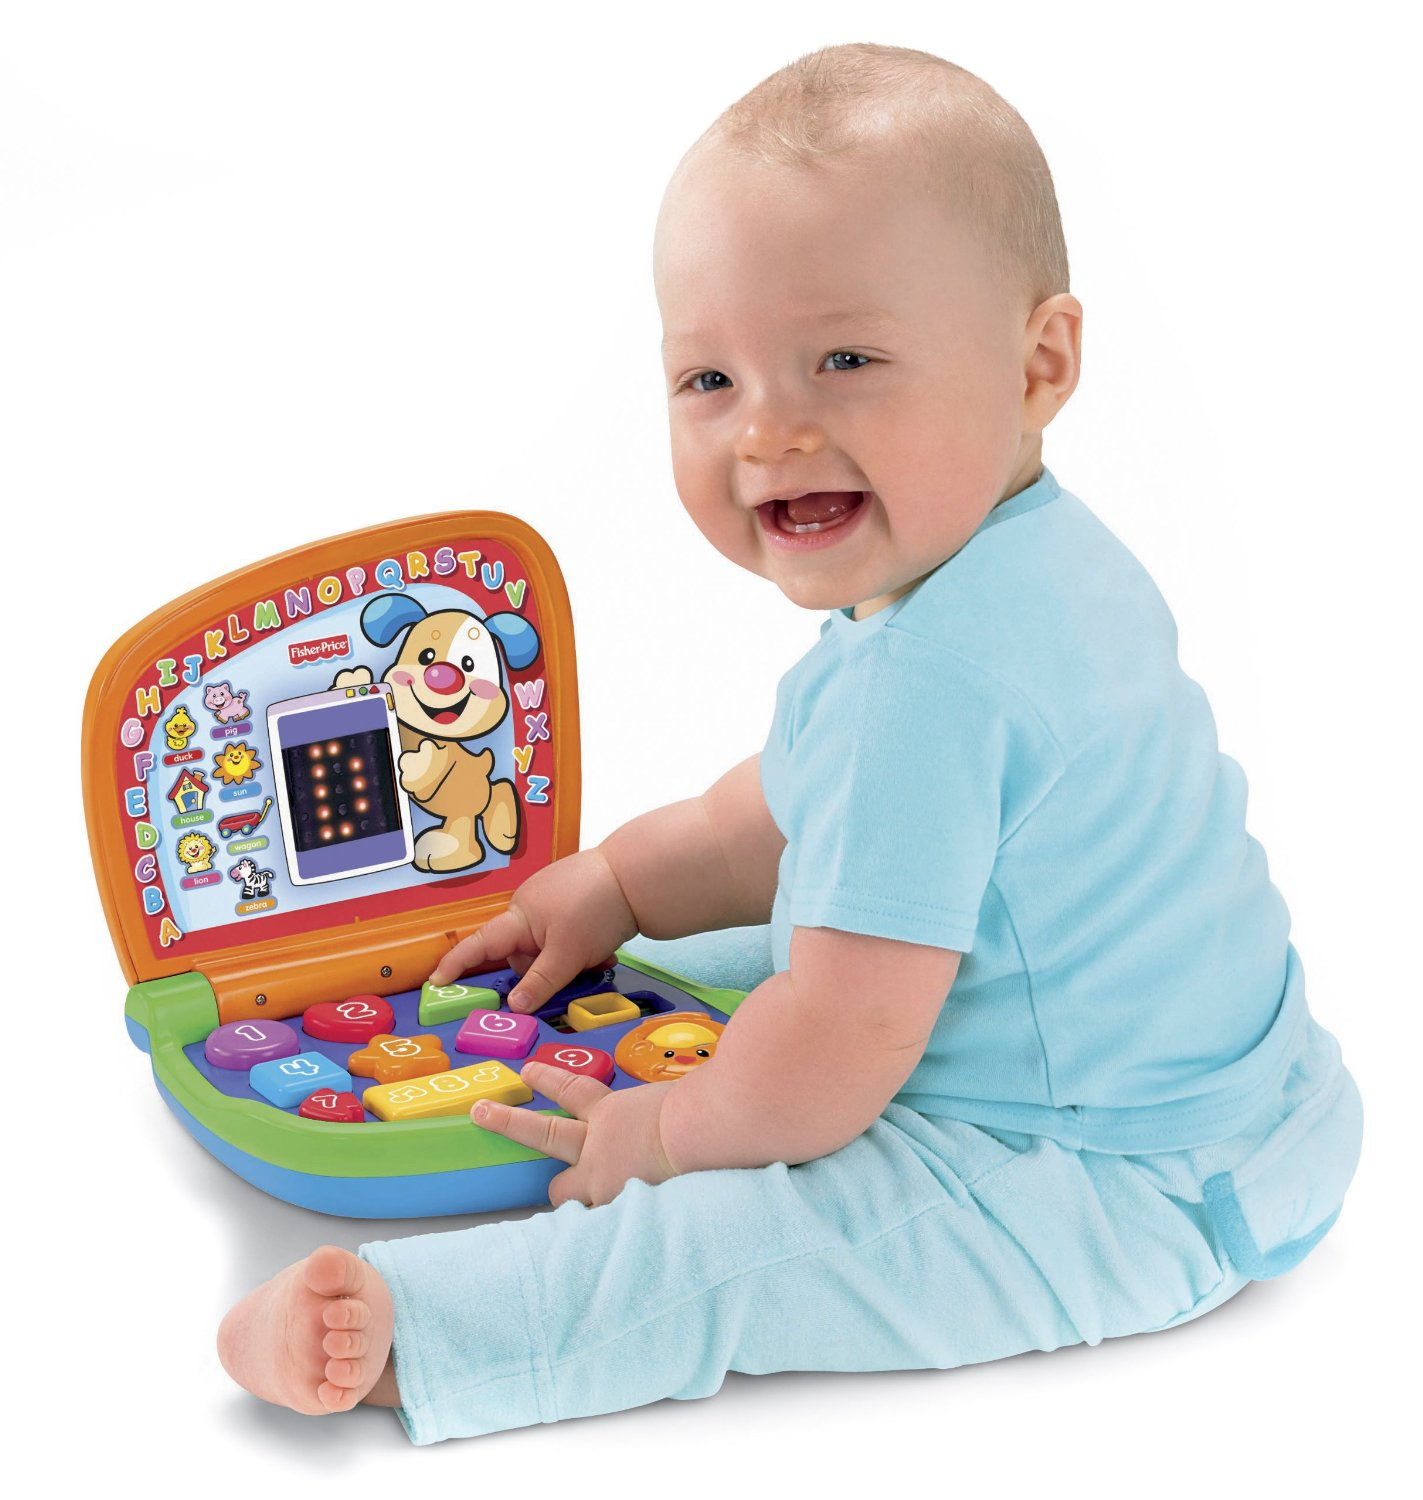 Toys for babies by age Toys for babies 3 to 6 month old